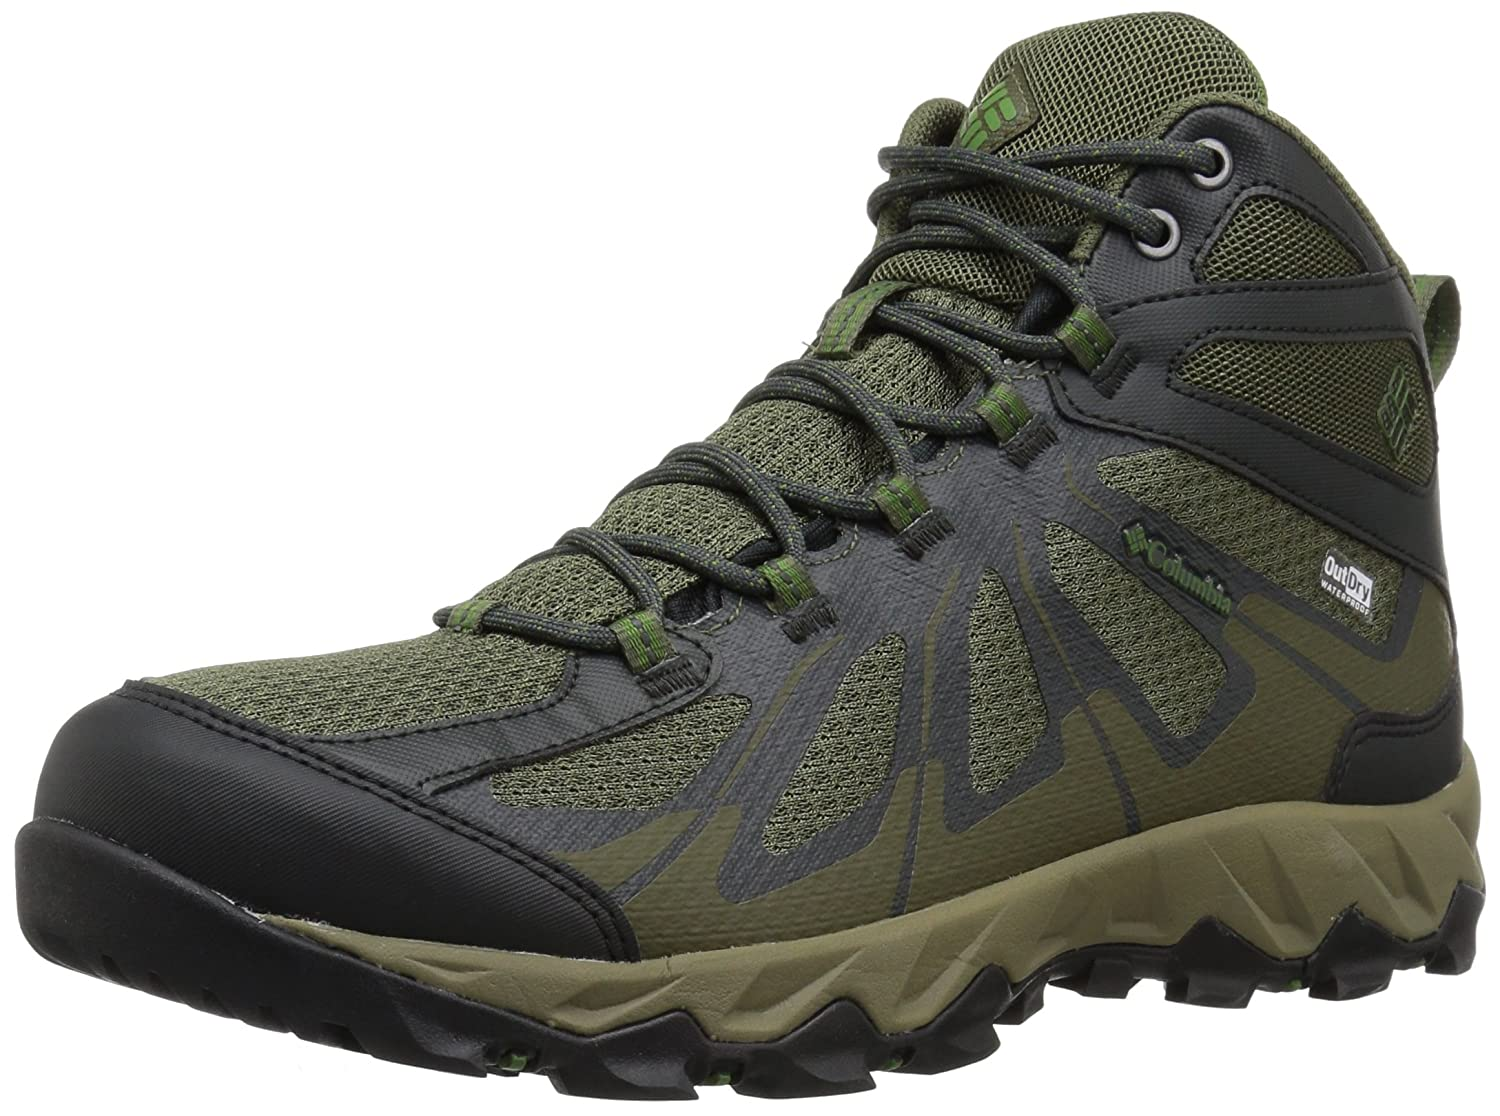 Columbia メンズ MEN'S PEAKFREAK XCRSN II XCEL MID OUTDRY B073RNDDZ5 13 Regular US|Nori, Dark Backcountry Nori, Dark Backcountry 13 Regular US